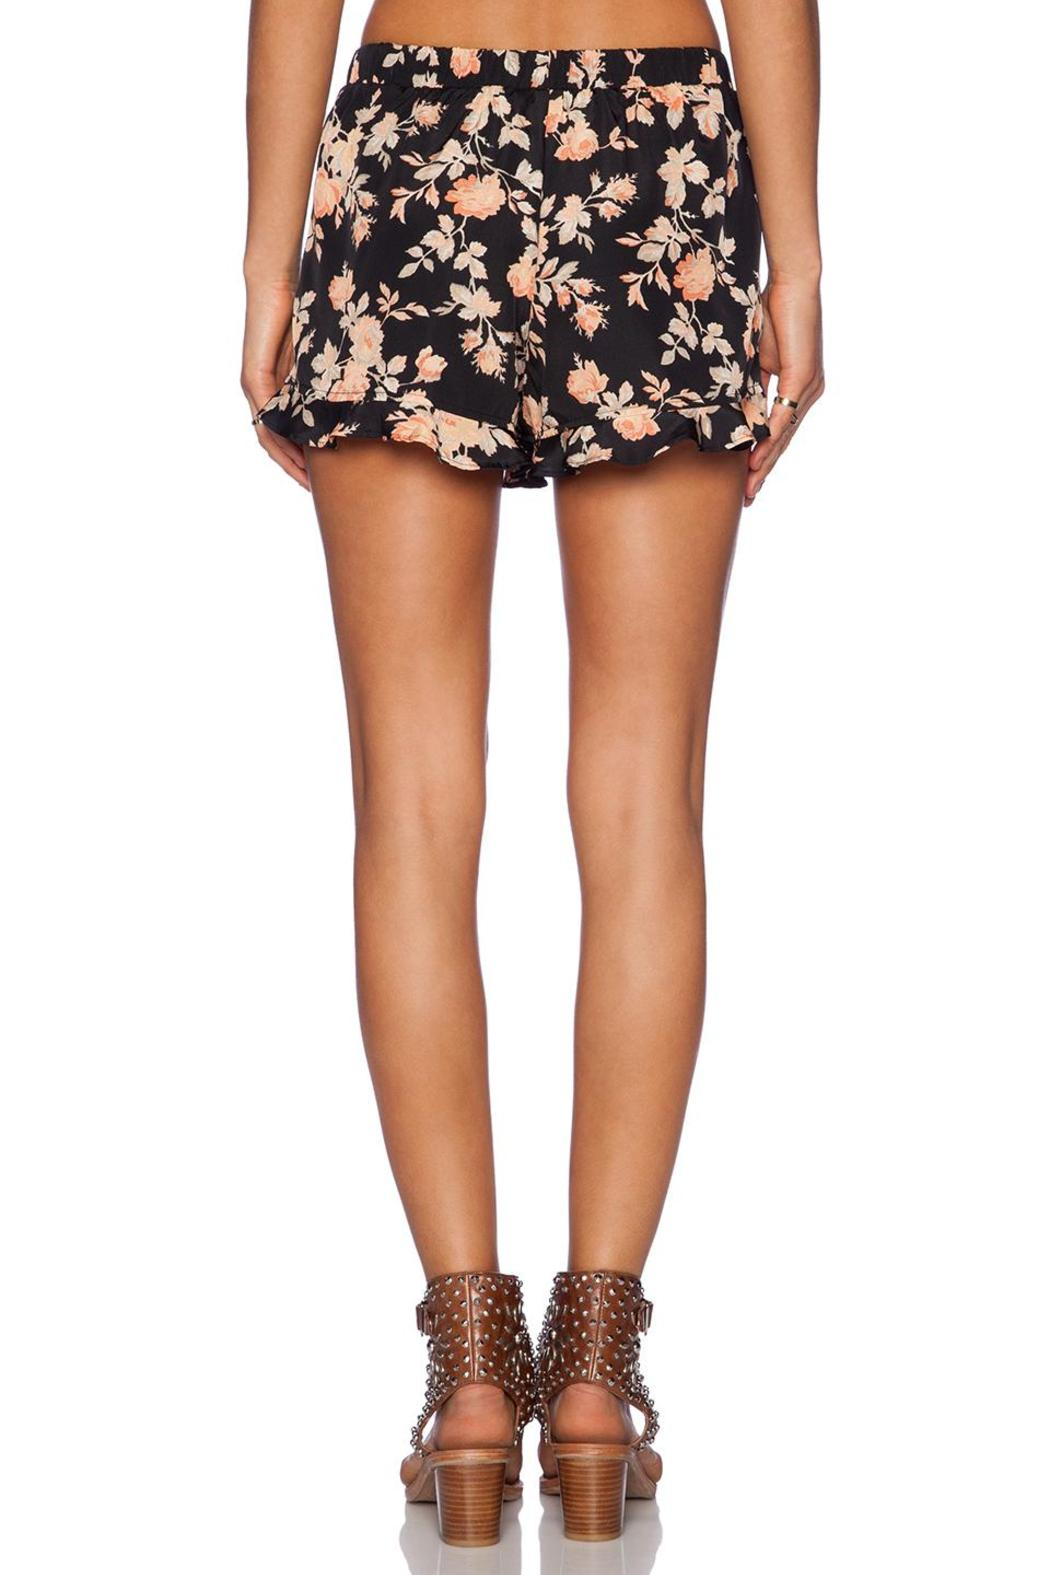 Jack Floral Ruffle Shorts - Front Full Image